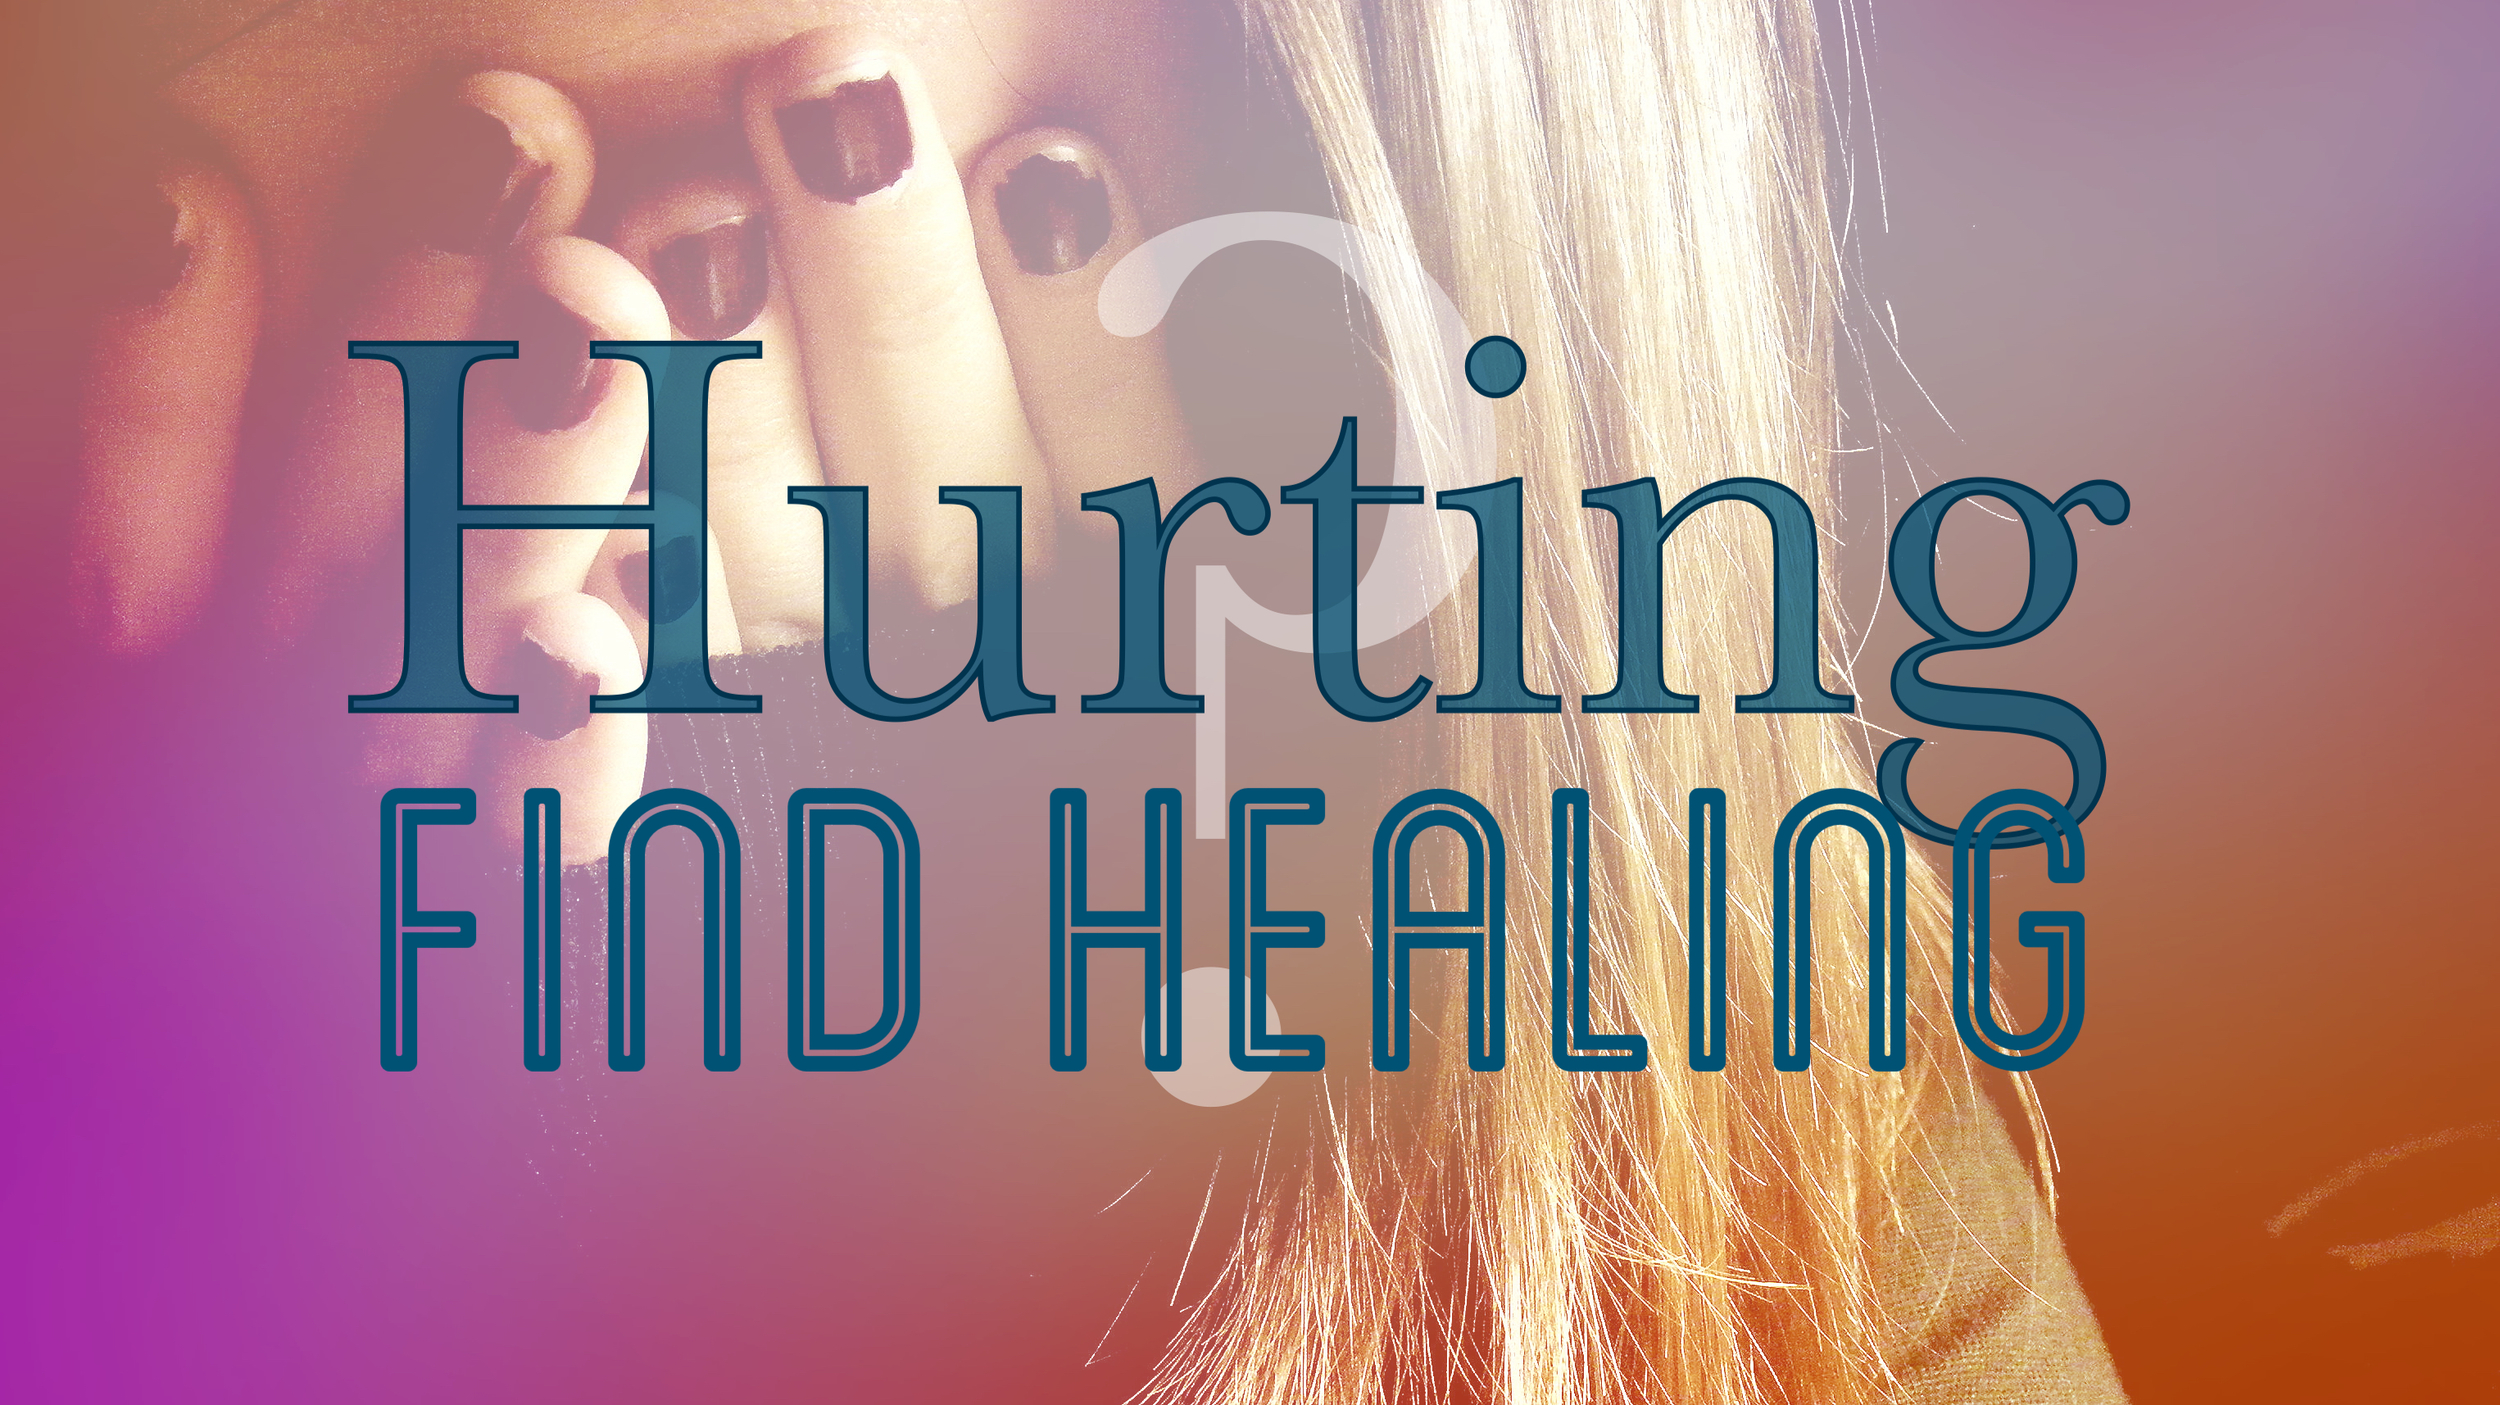 Hurting? Find Healing (exercise for relational hurts)